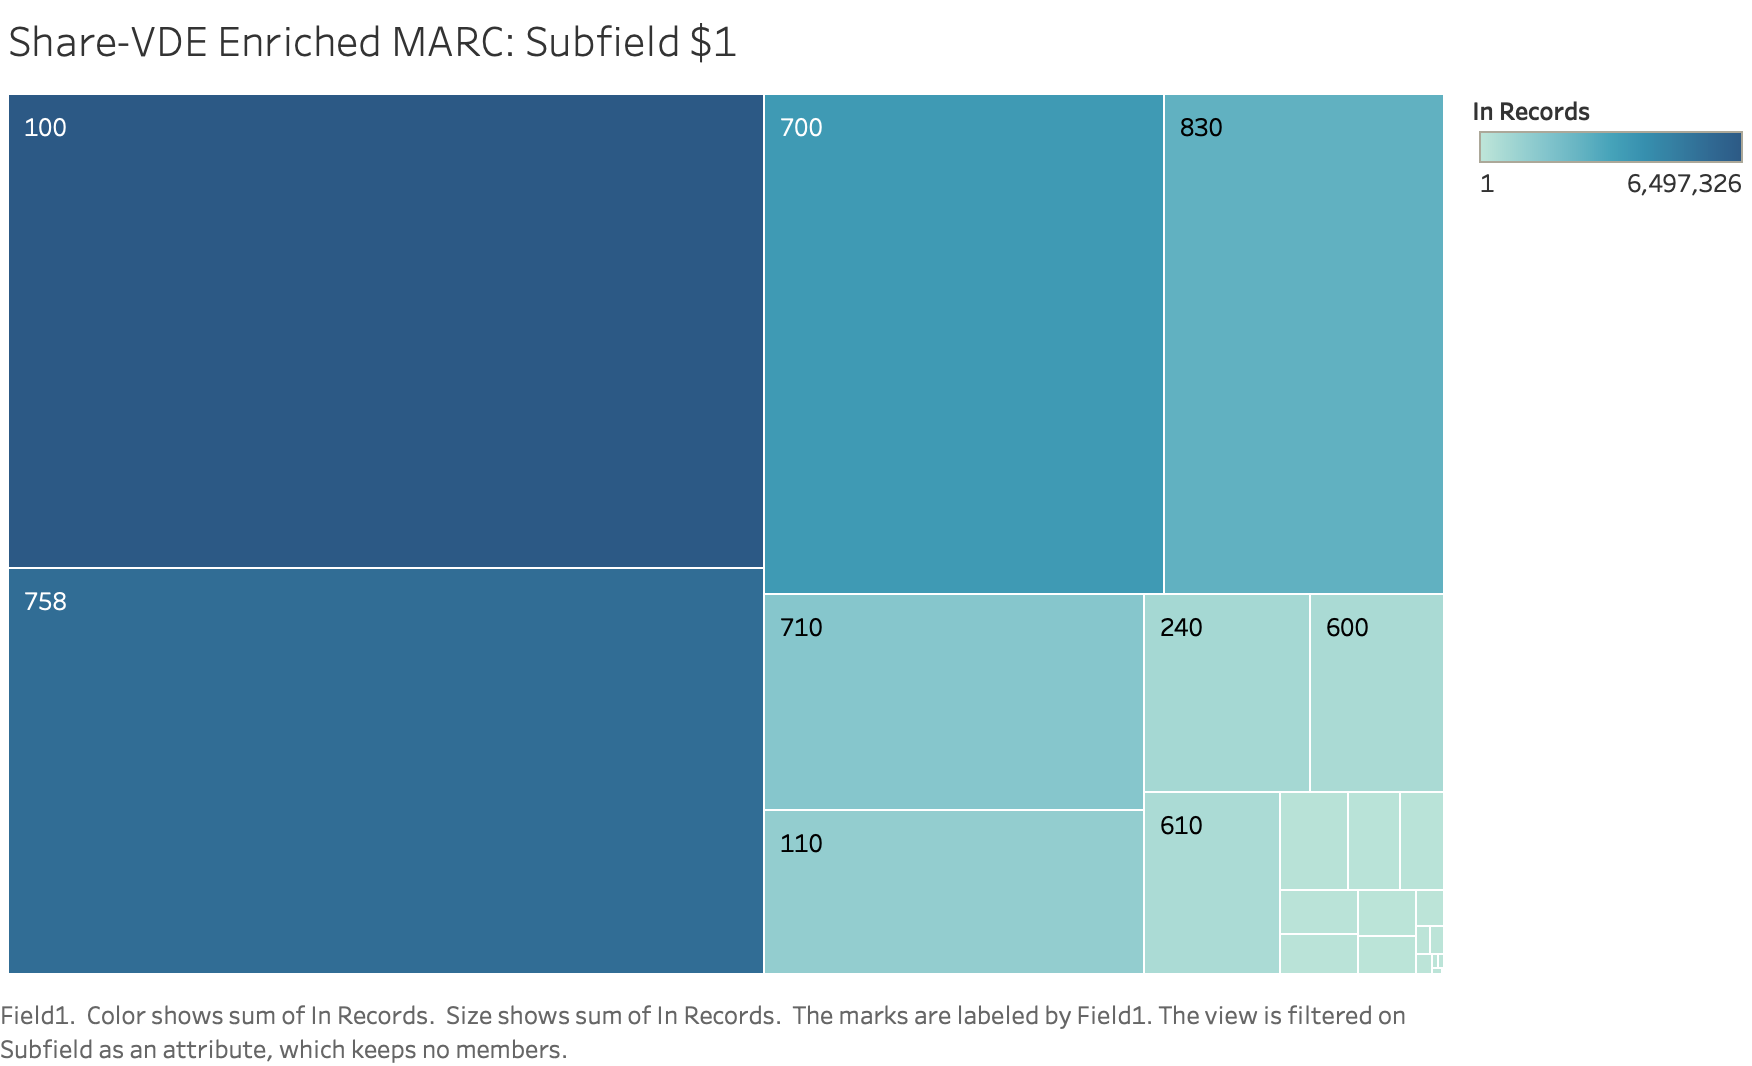 Figure 8. $1 URIs from Penn Share-VDE enriched MARC. Source: Author